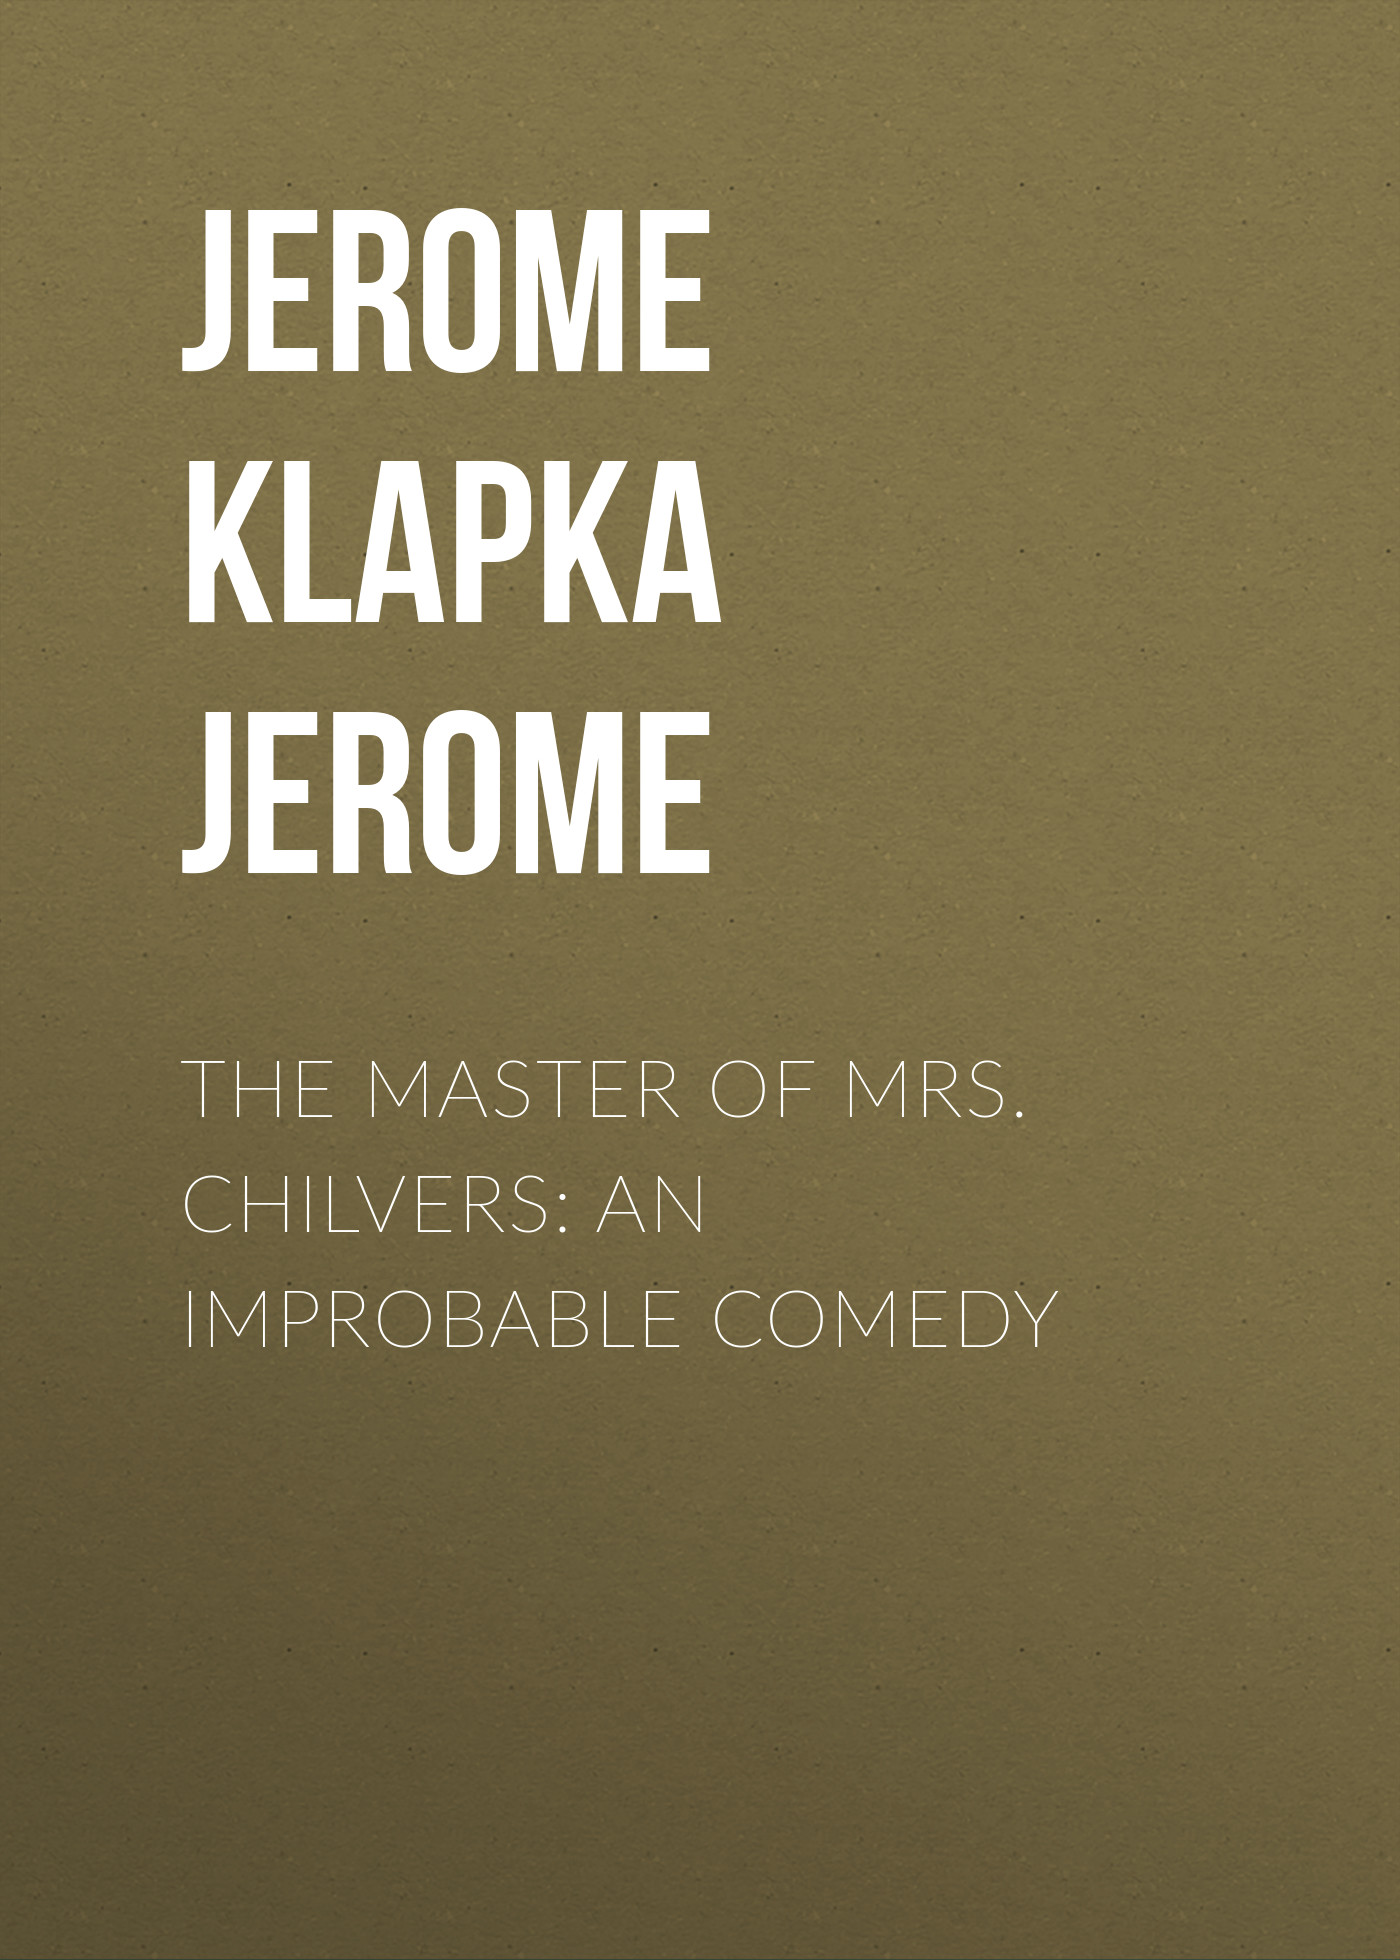 Джером Клапка Джером The Master of Mrs. Chilvers: An Improbable Comedy джером клапка джером diary of a pilgrimage